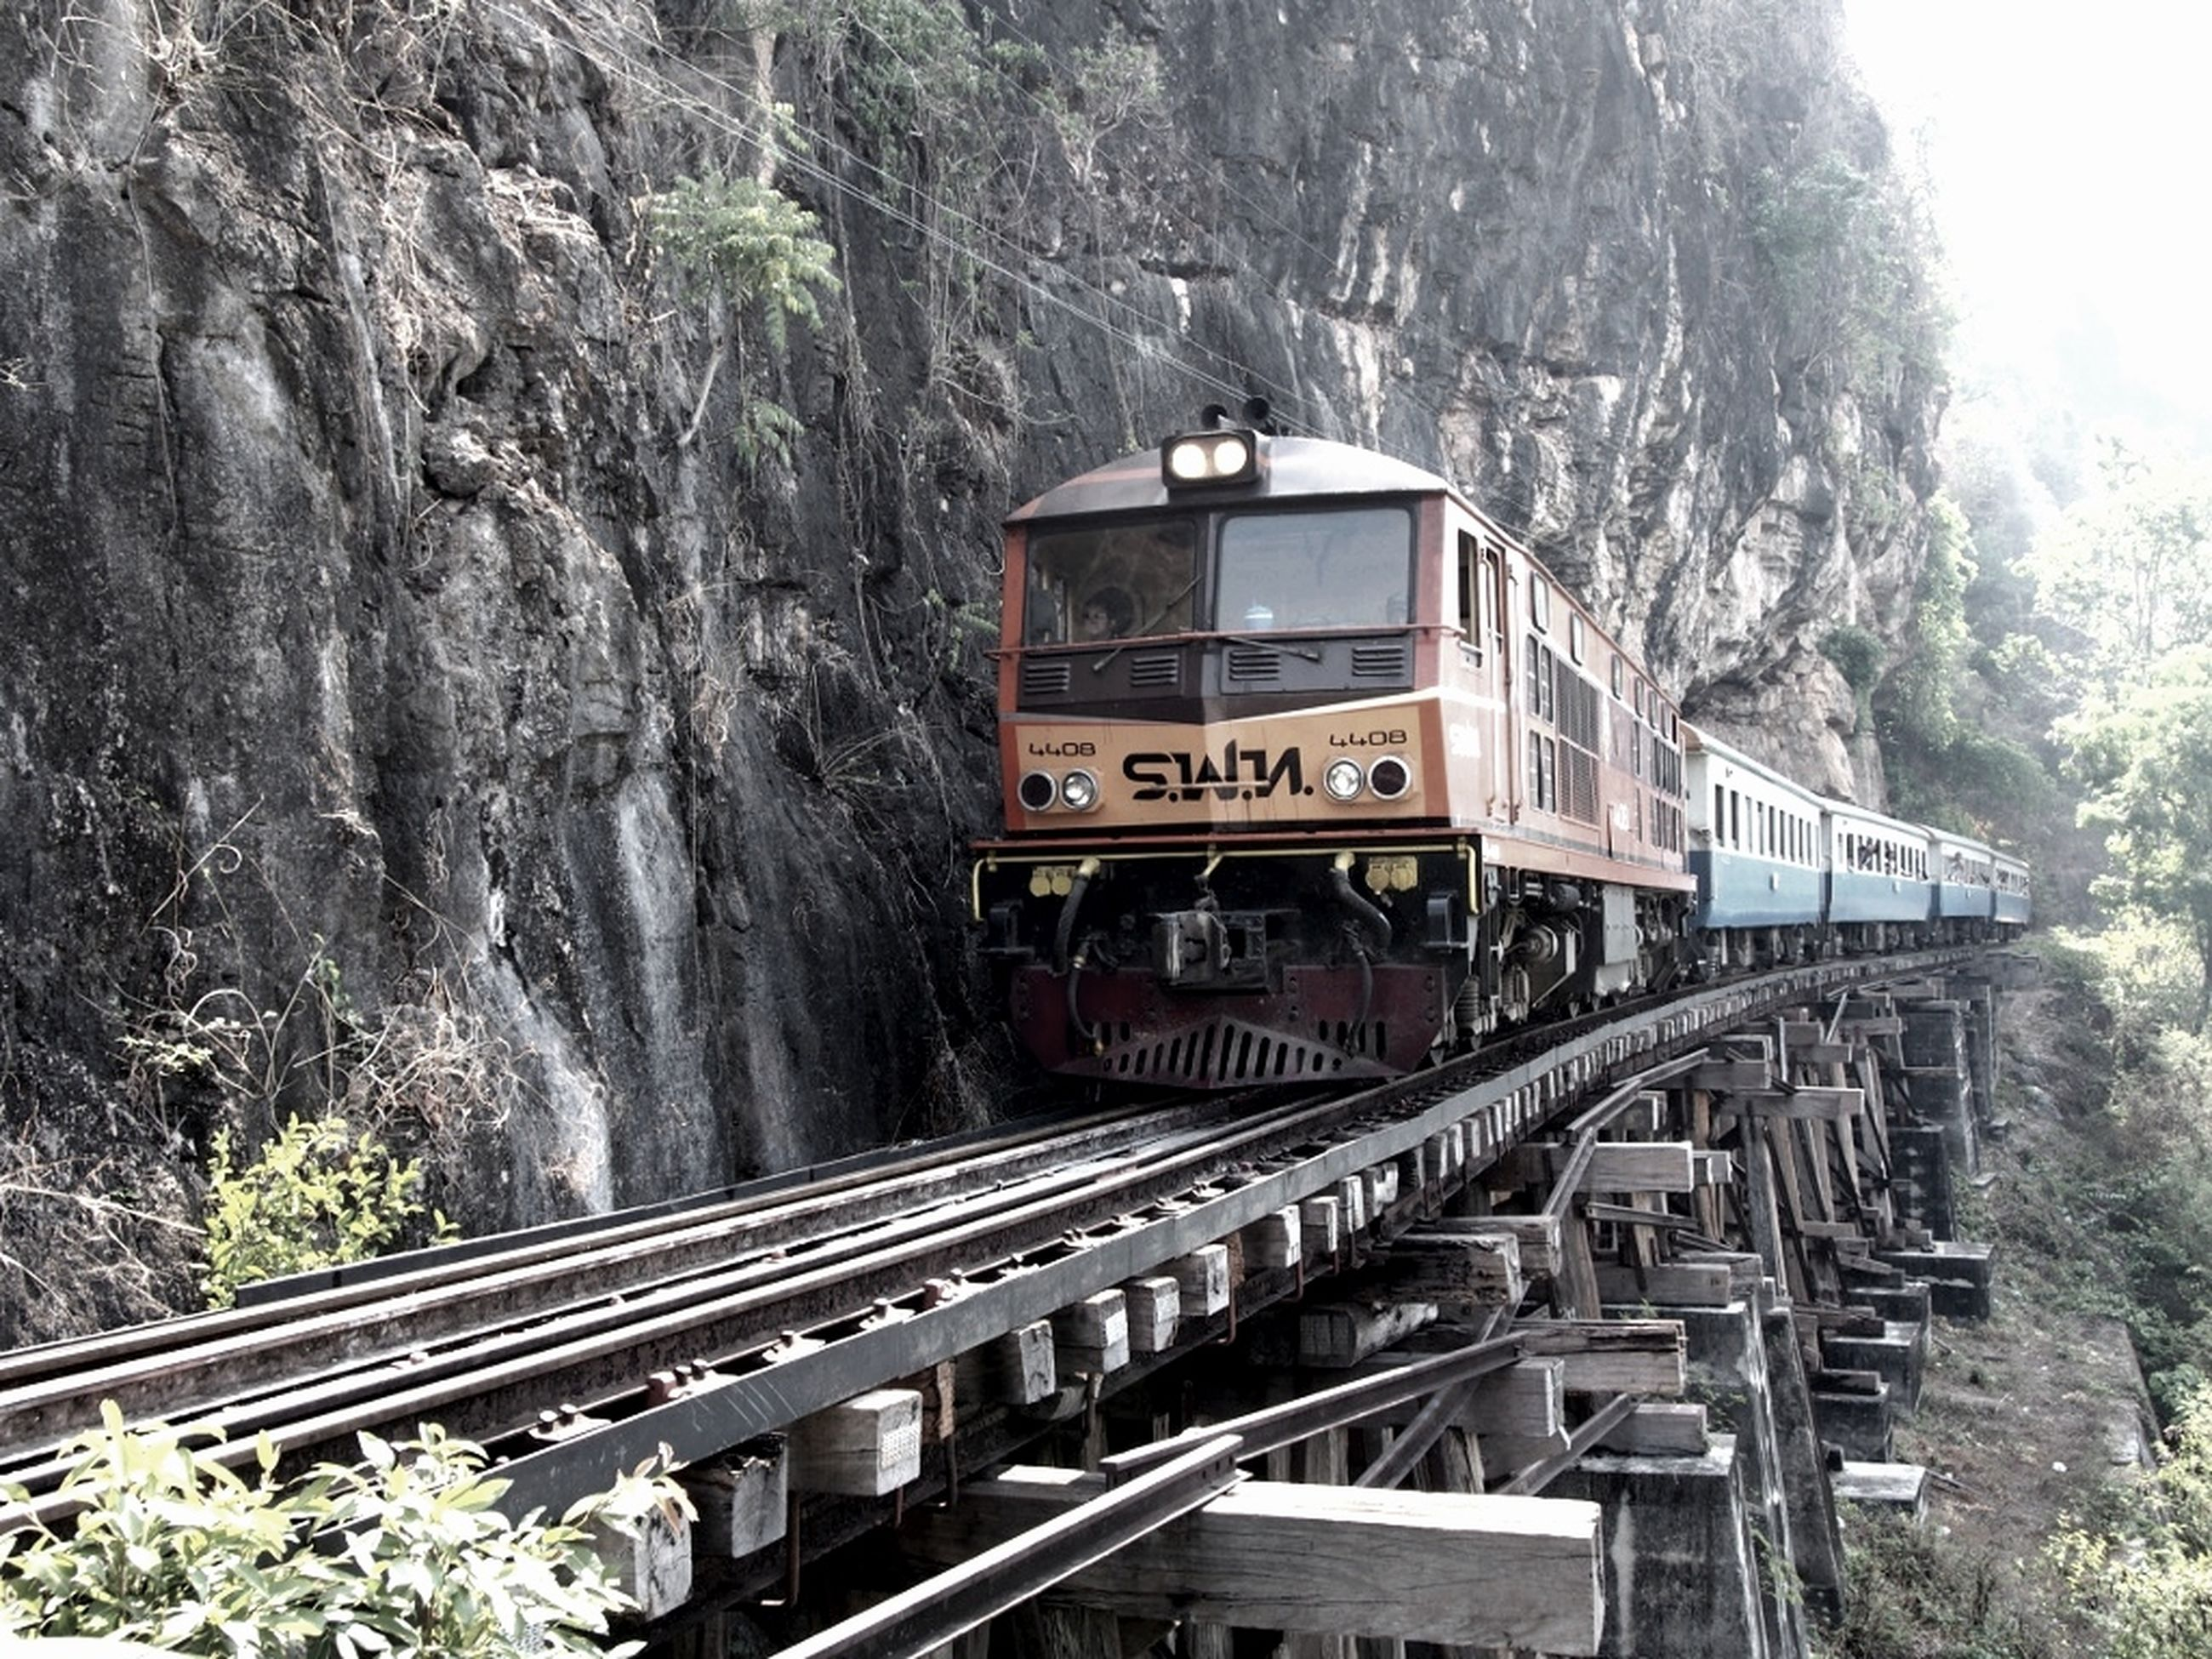 tree, mountain, railroad track, rail transportation, transportation, built structure, architecture, public transportation, forest, day, nature, train - vehicle, building exterior, travel, railing, outdoors, no people, tranquility, connection, mode of transport